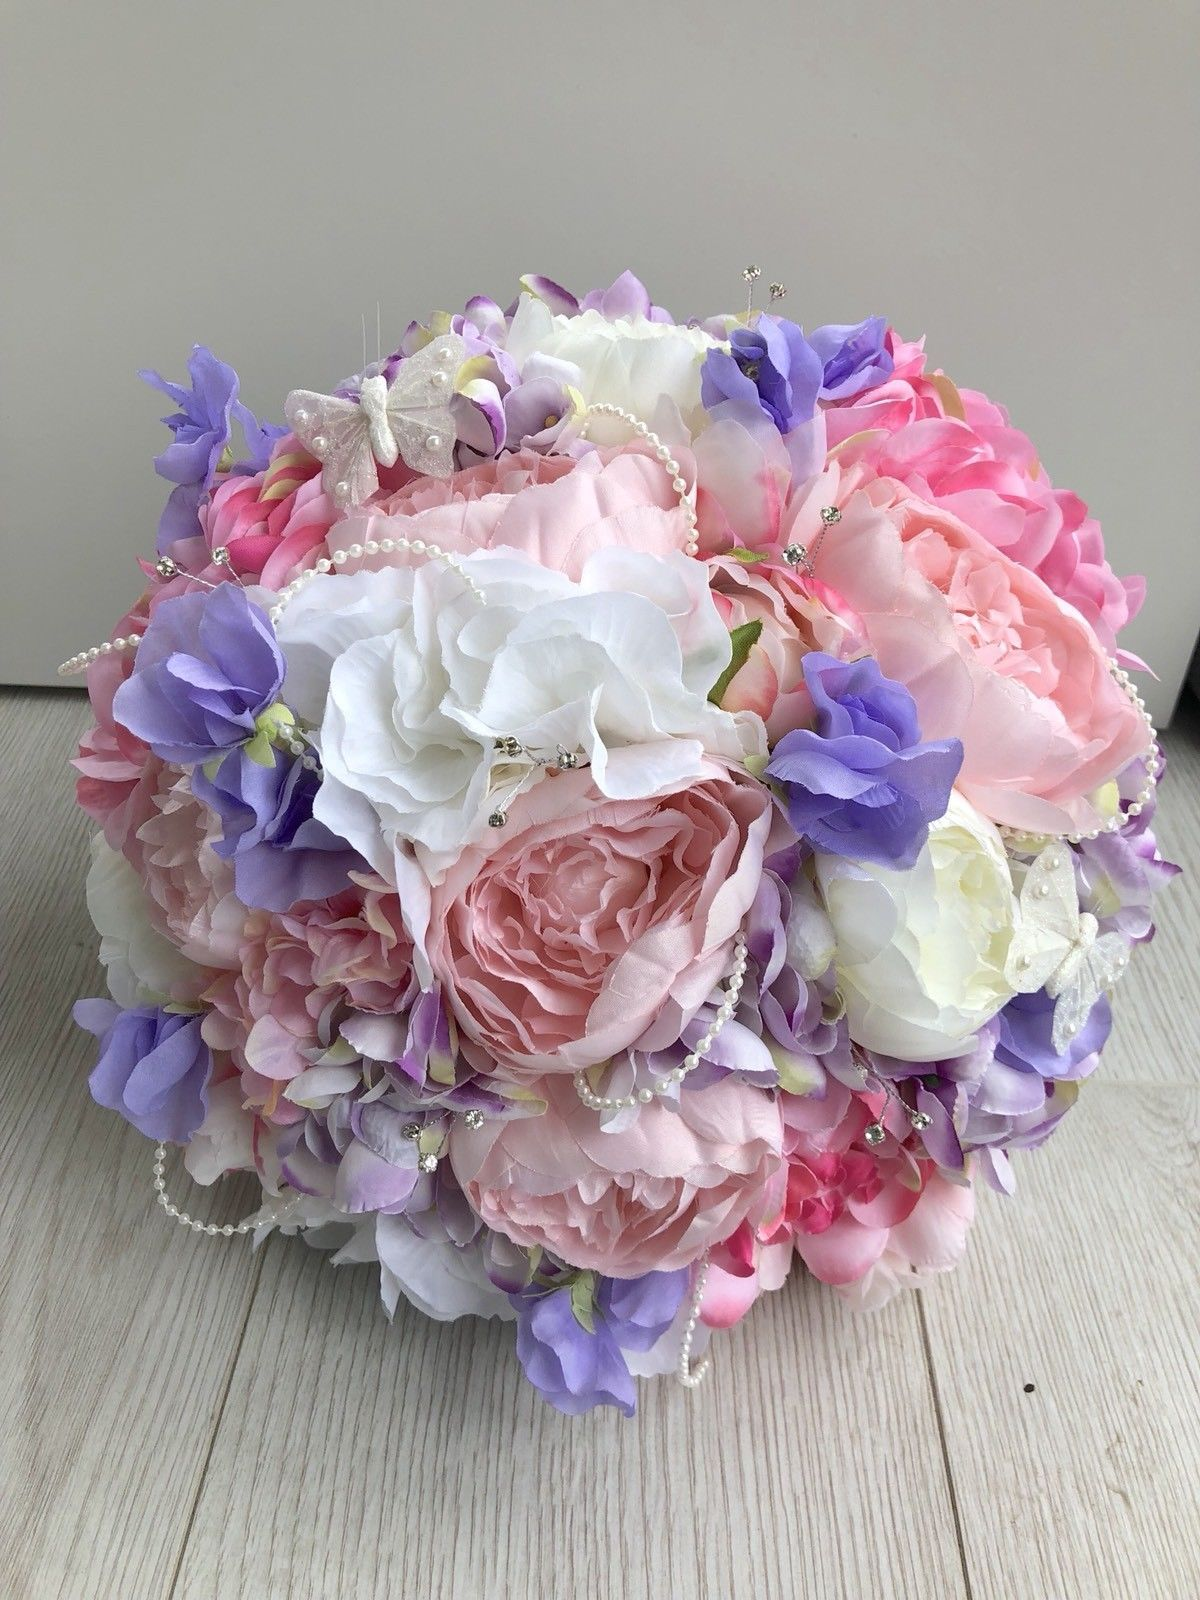 Wedding Flowers Pink Lilac White Silk Bride Bouquet Peony Hydrangea